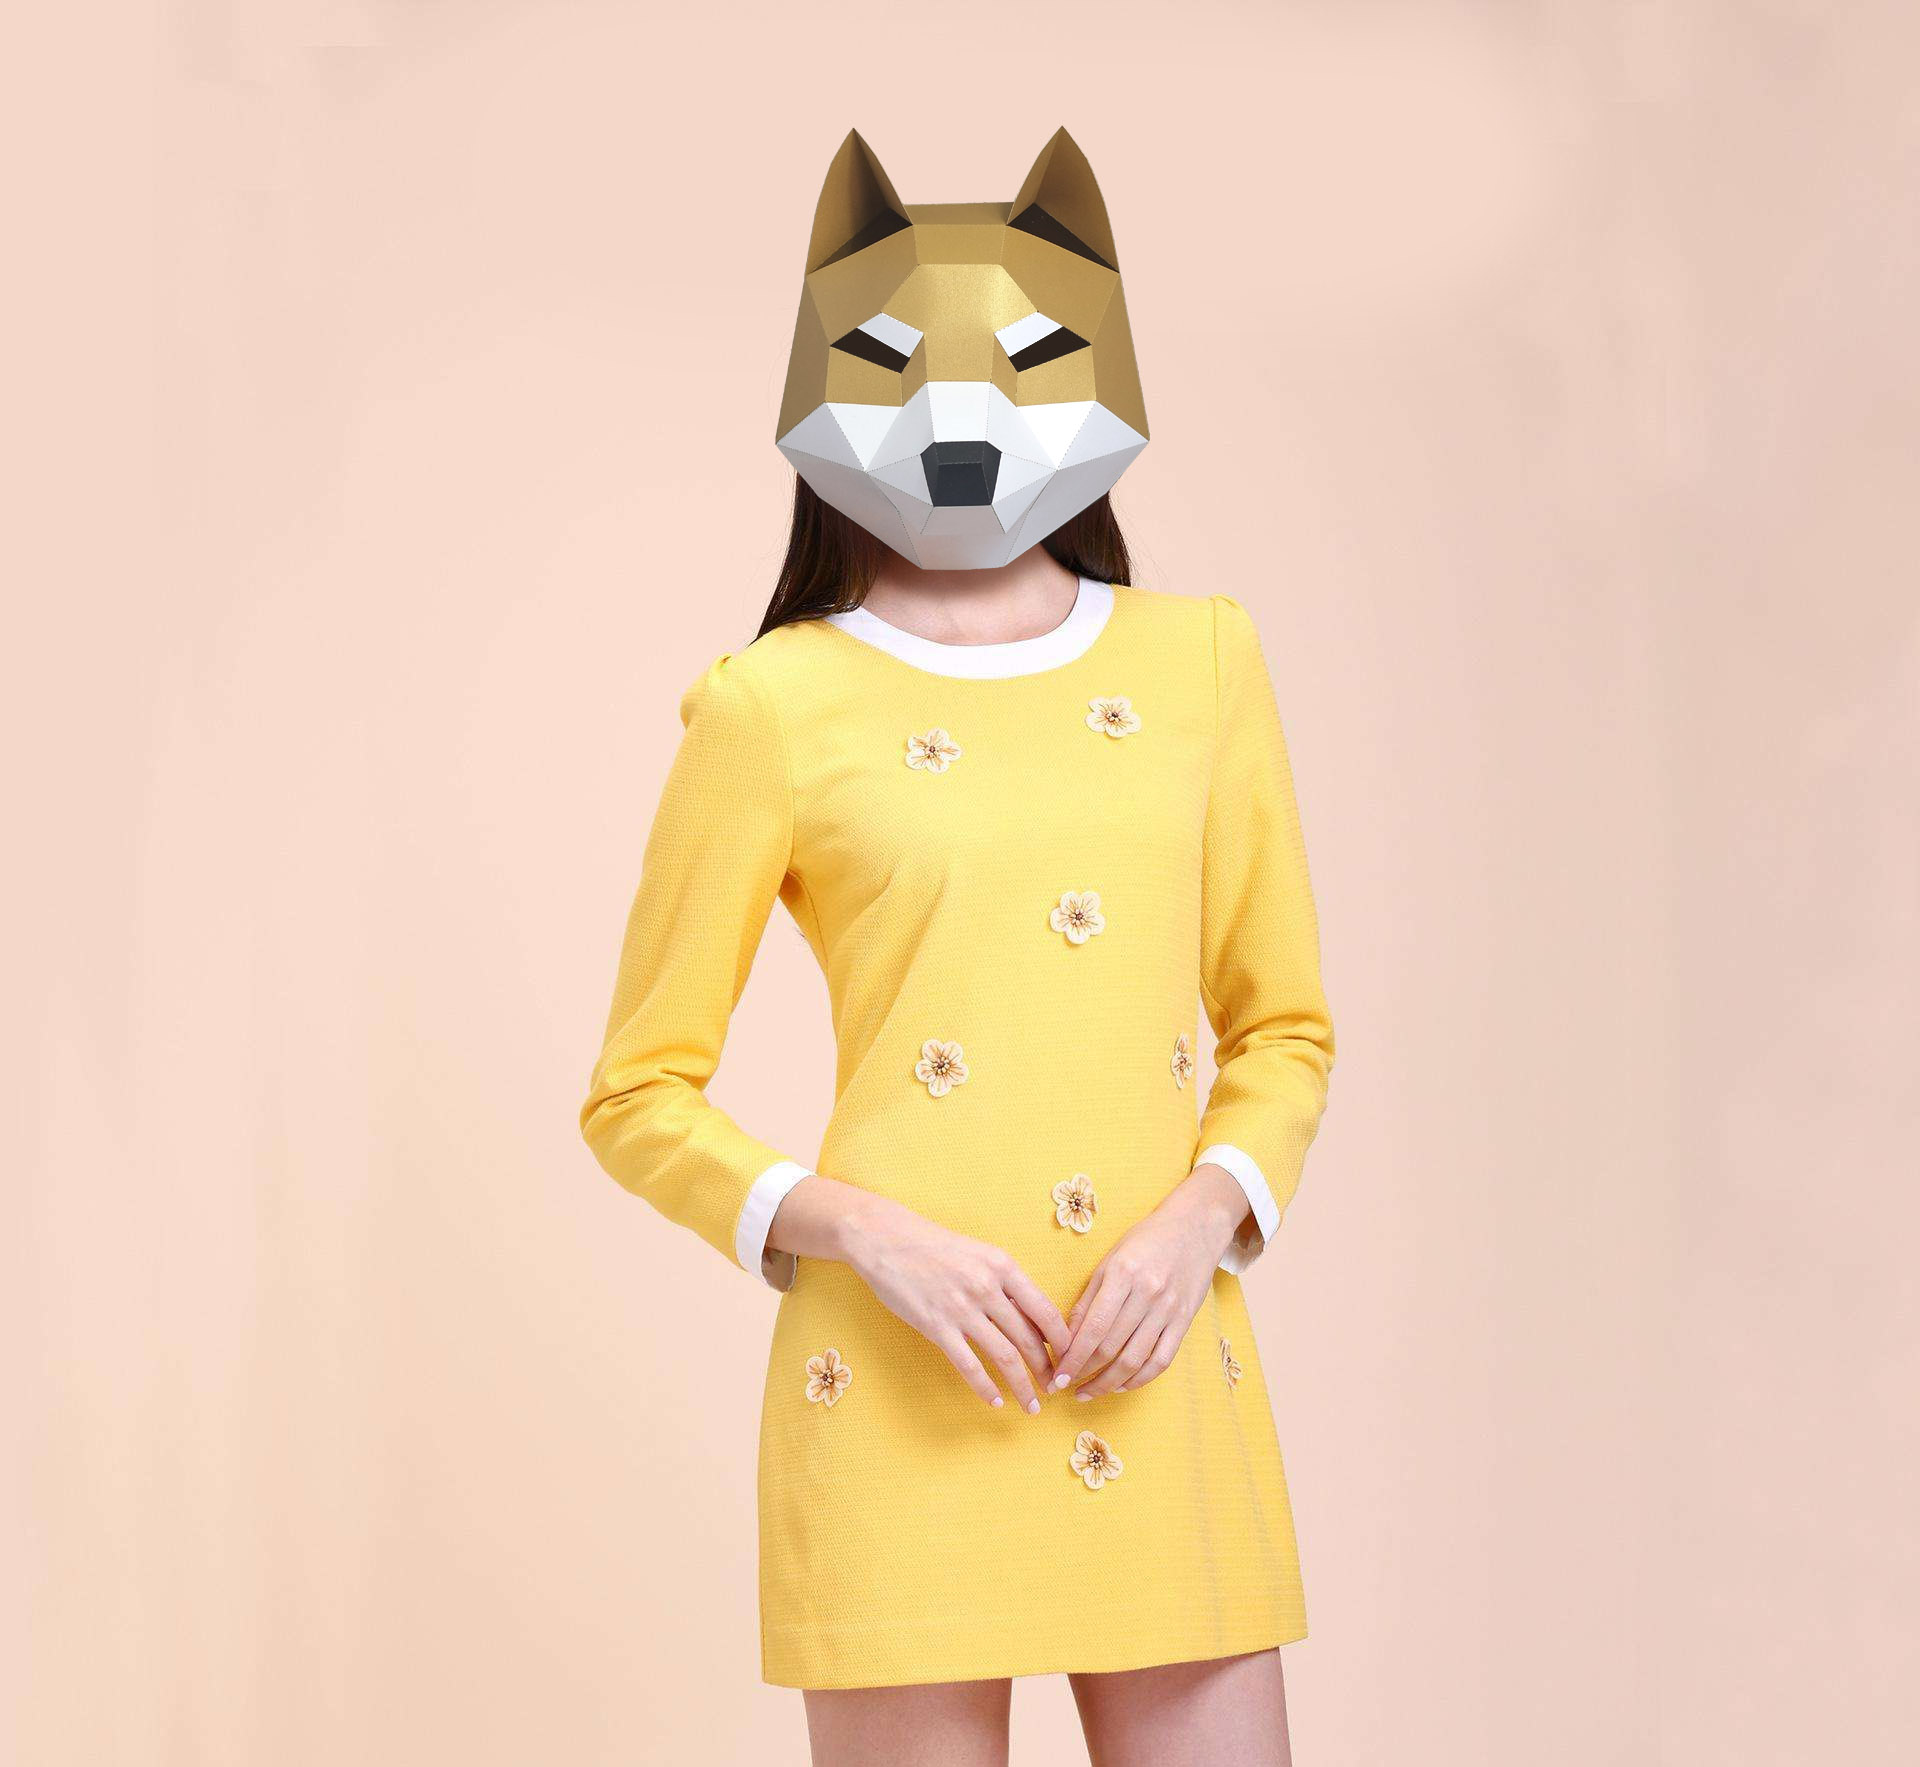 3D Paper Mask Fashion Cute Dog Animal Costume Cosplay DIY Paper Craft Model Mask Christmas Halloween Prom Party Gift